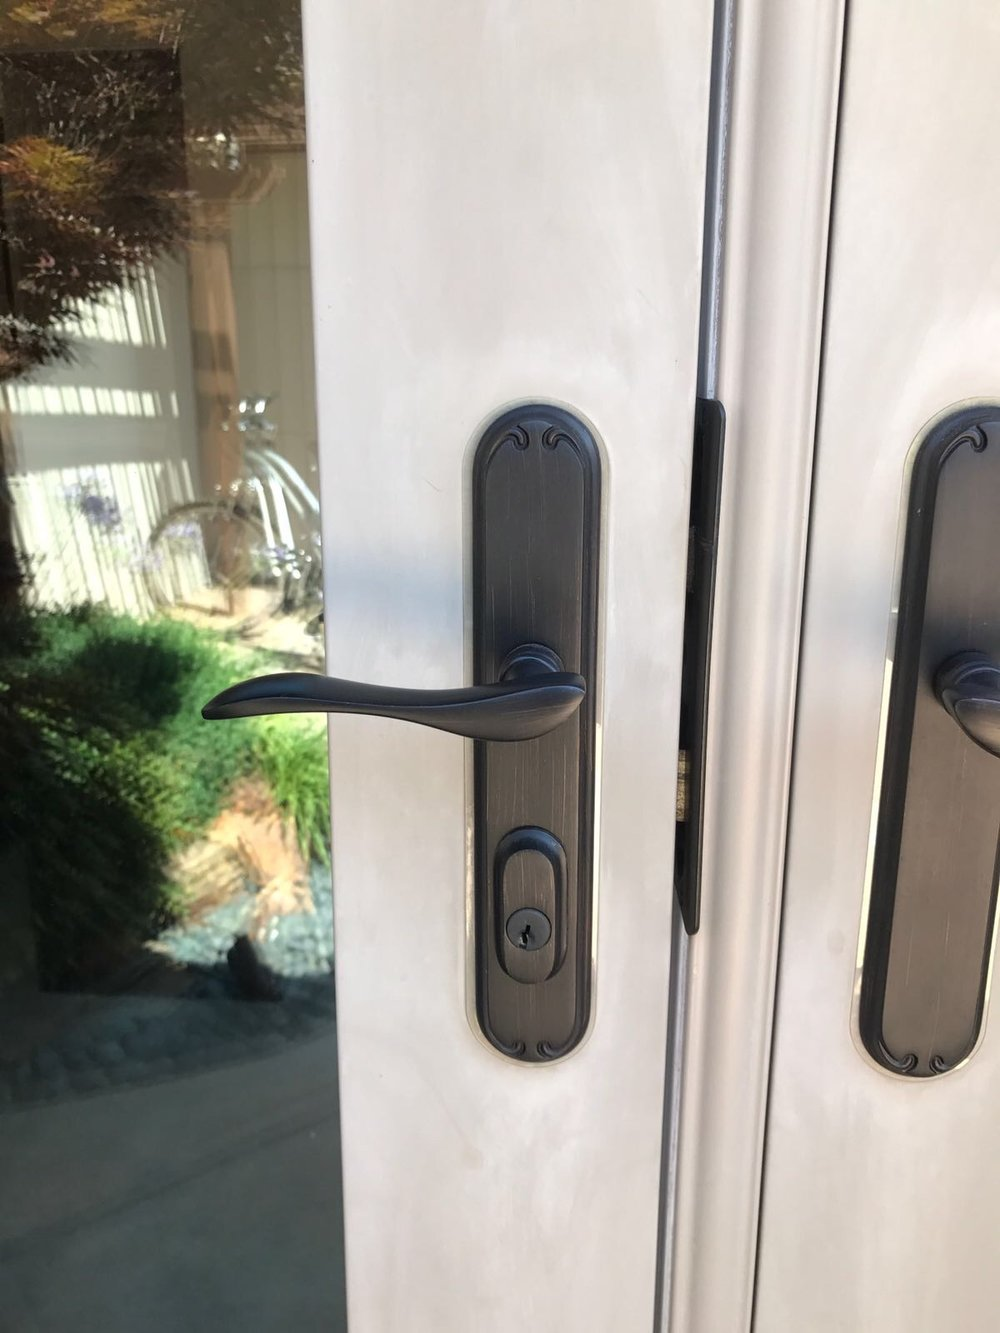 Client's new lock installed on her french doors.